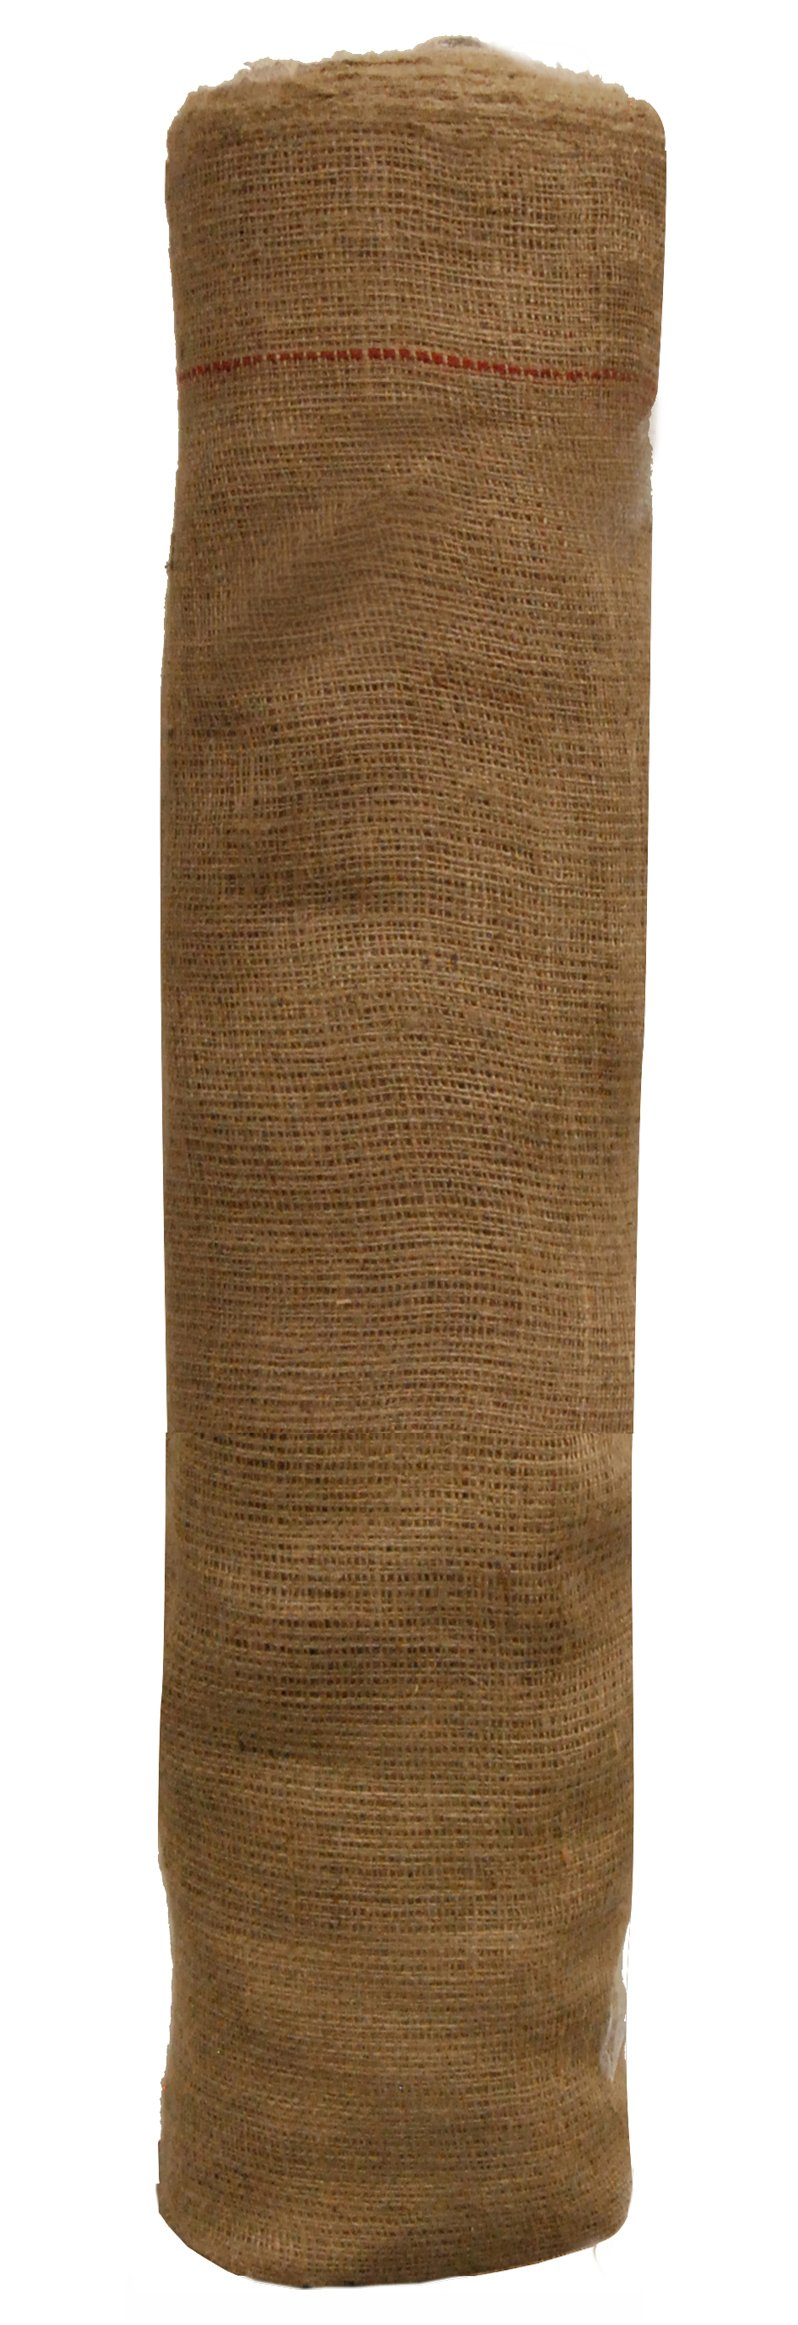 Easy Gardener 3103 3x150 Natural Burlap Weed Barrier Fabric, 3'X150'